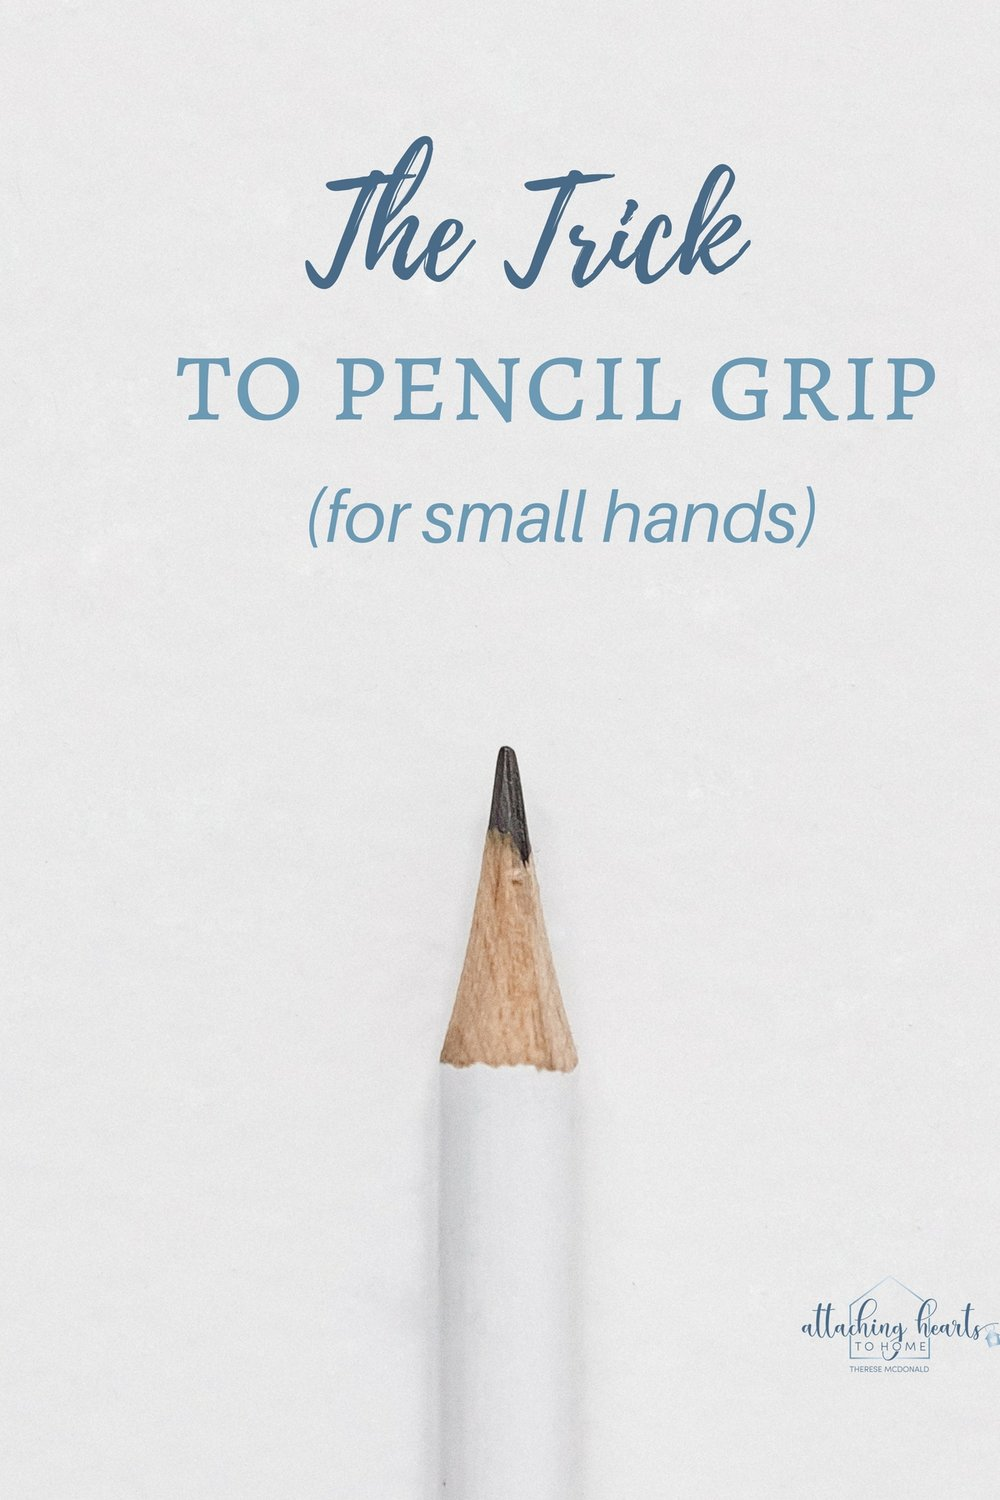 The Trick to Pencil Grip-Attaching Hearts to Home-2.jpg